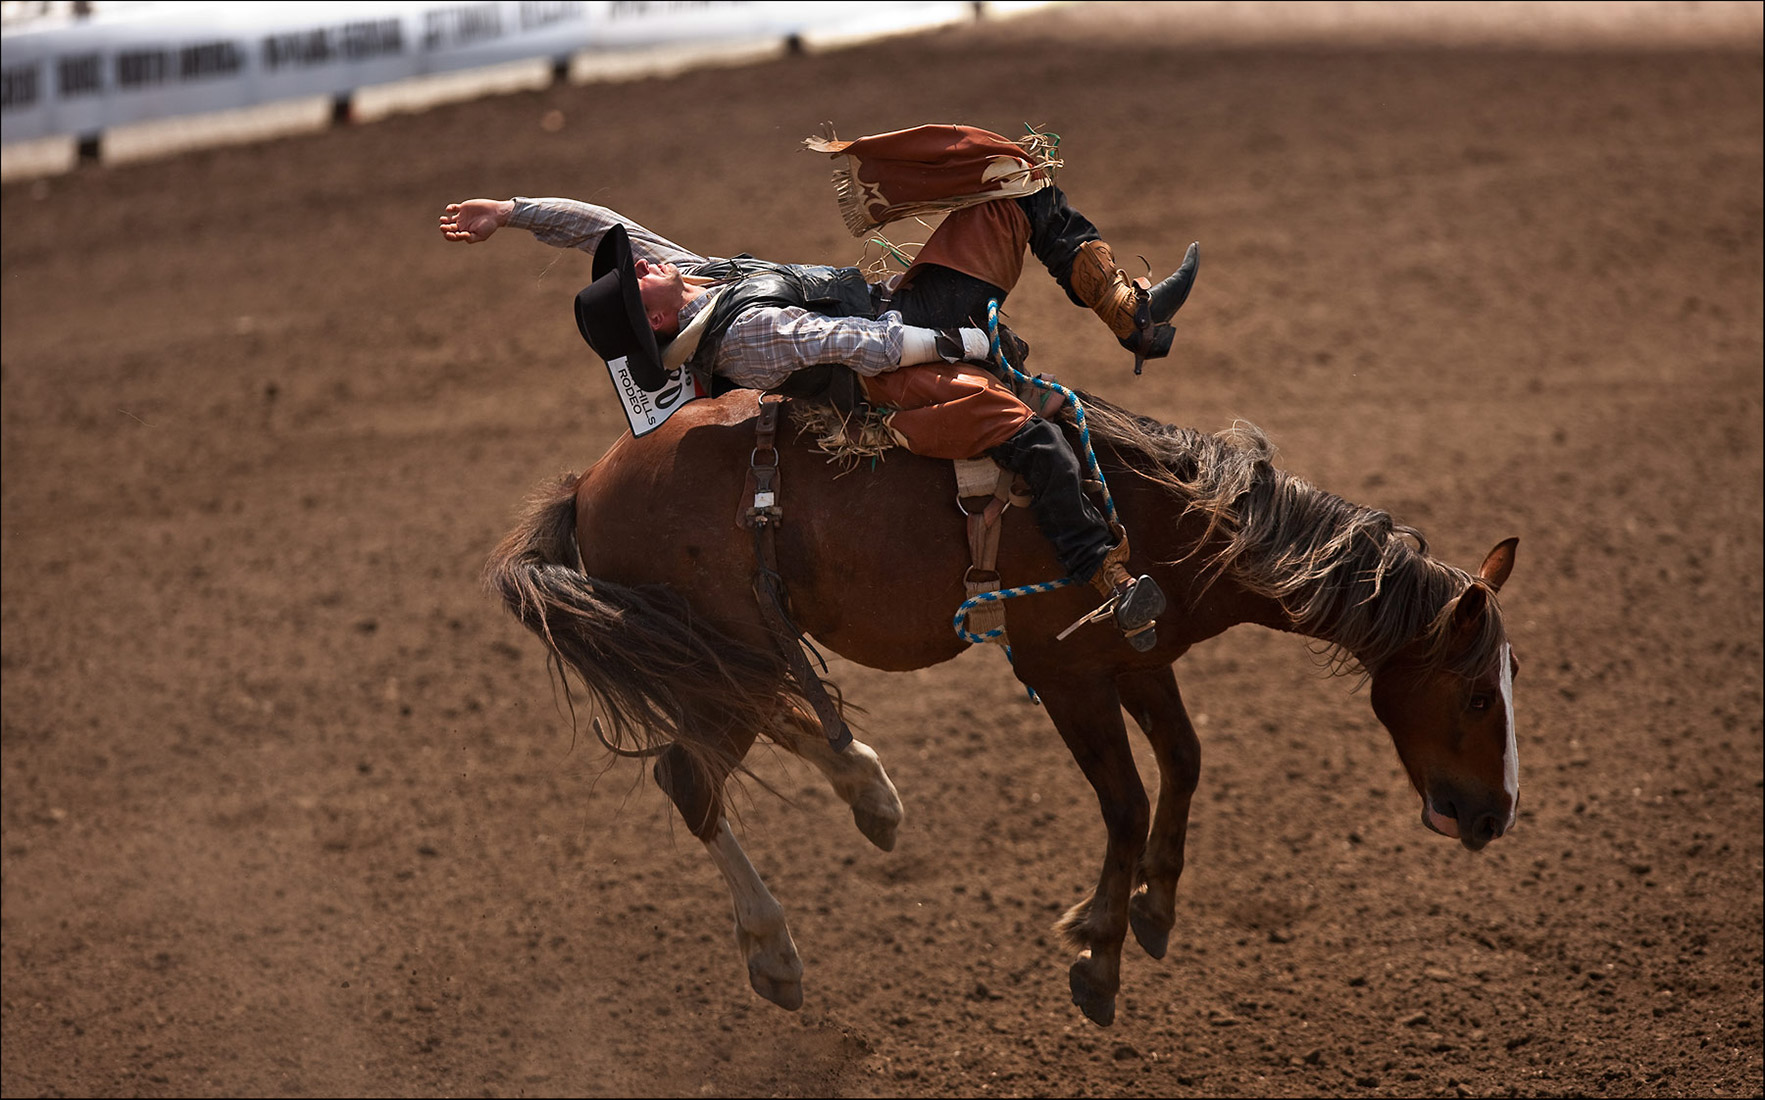 090607_rodeo_249